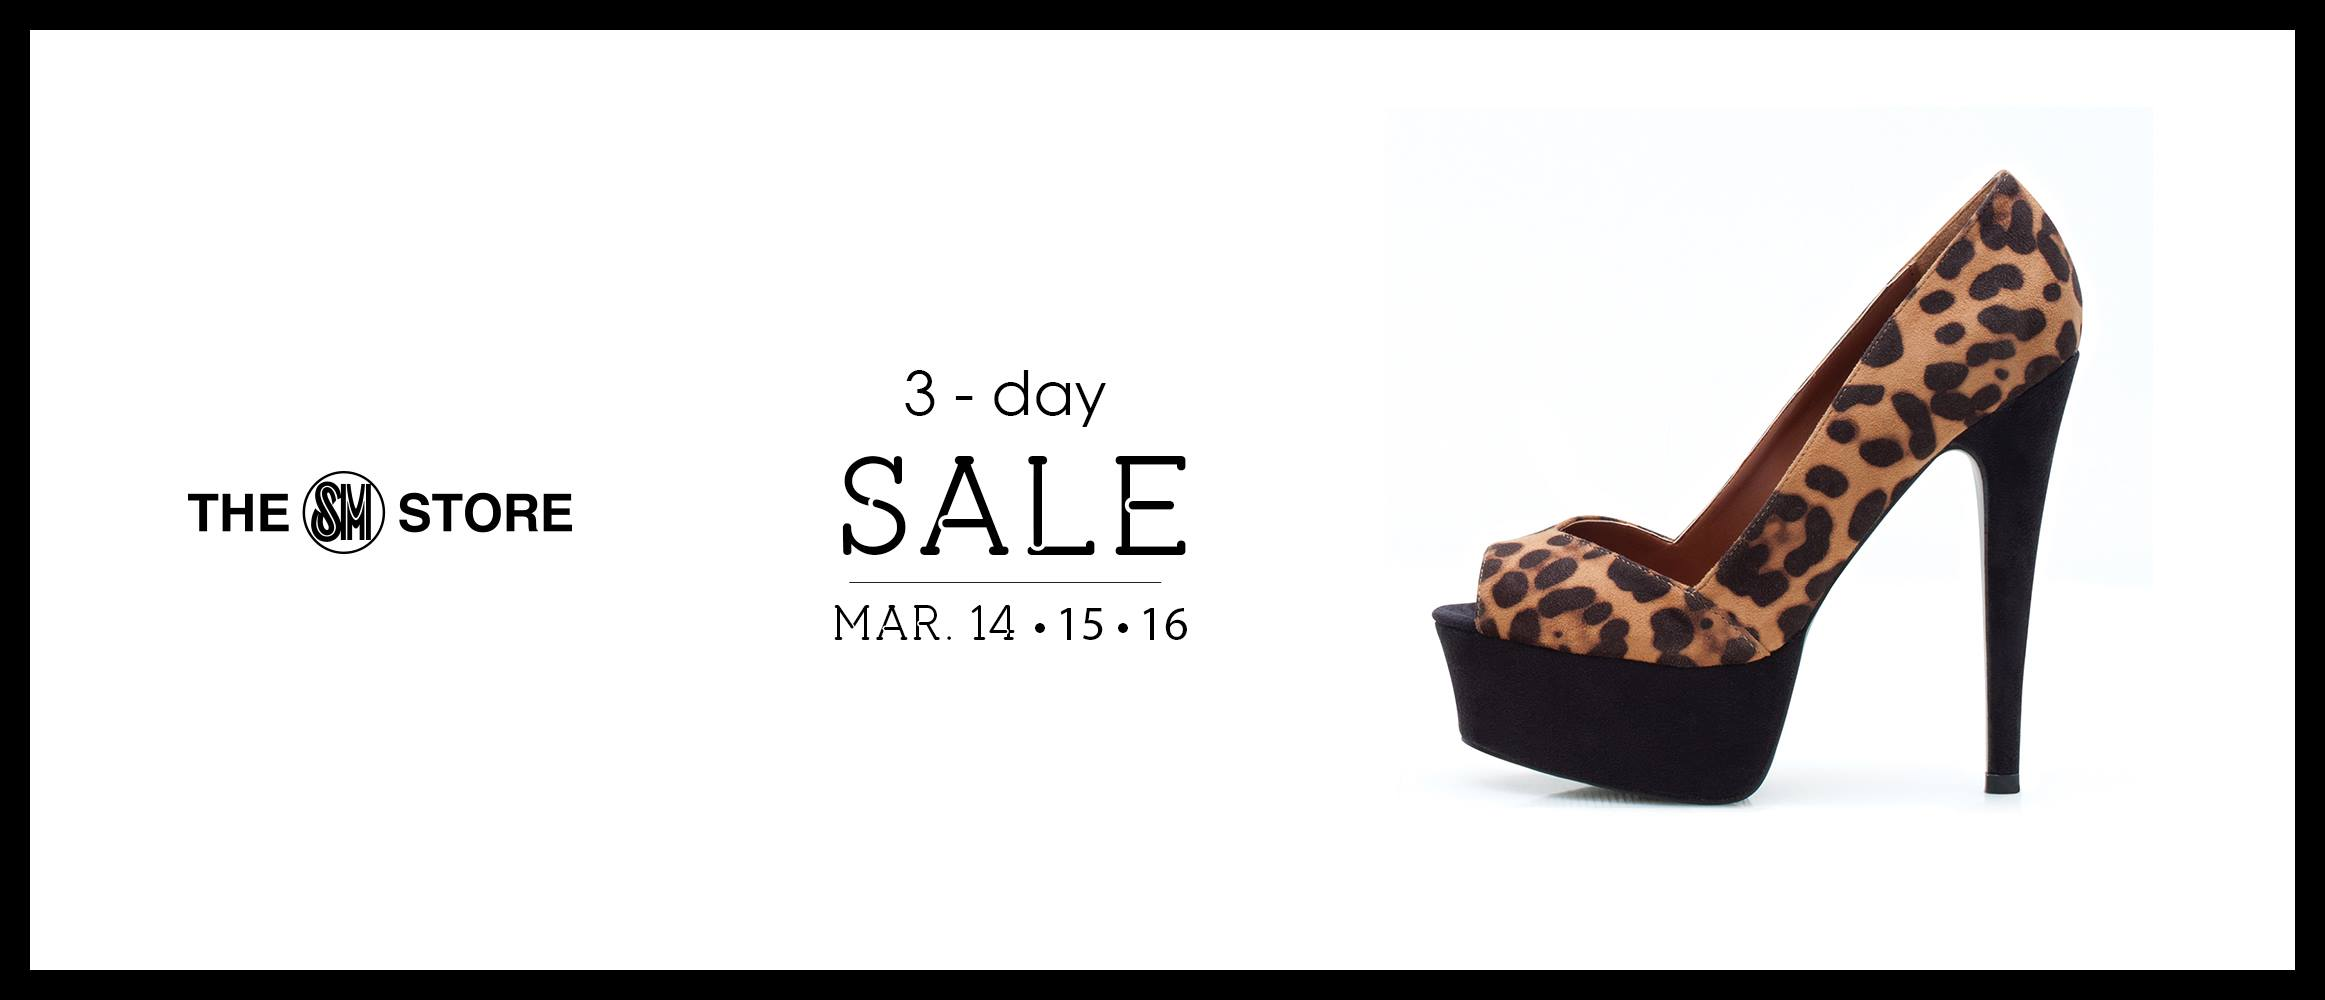 The SM Store 3-Day Sale March 2014